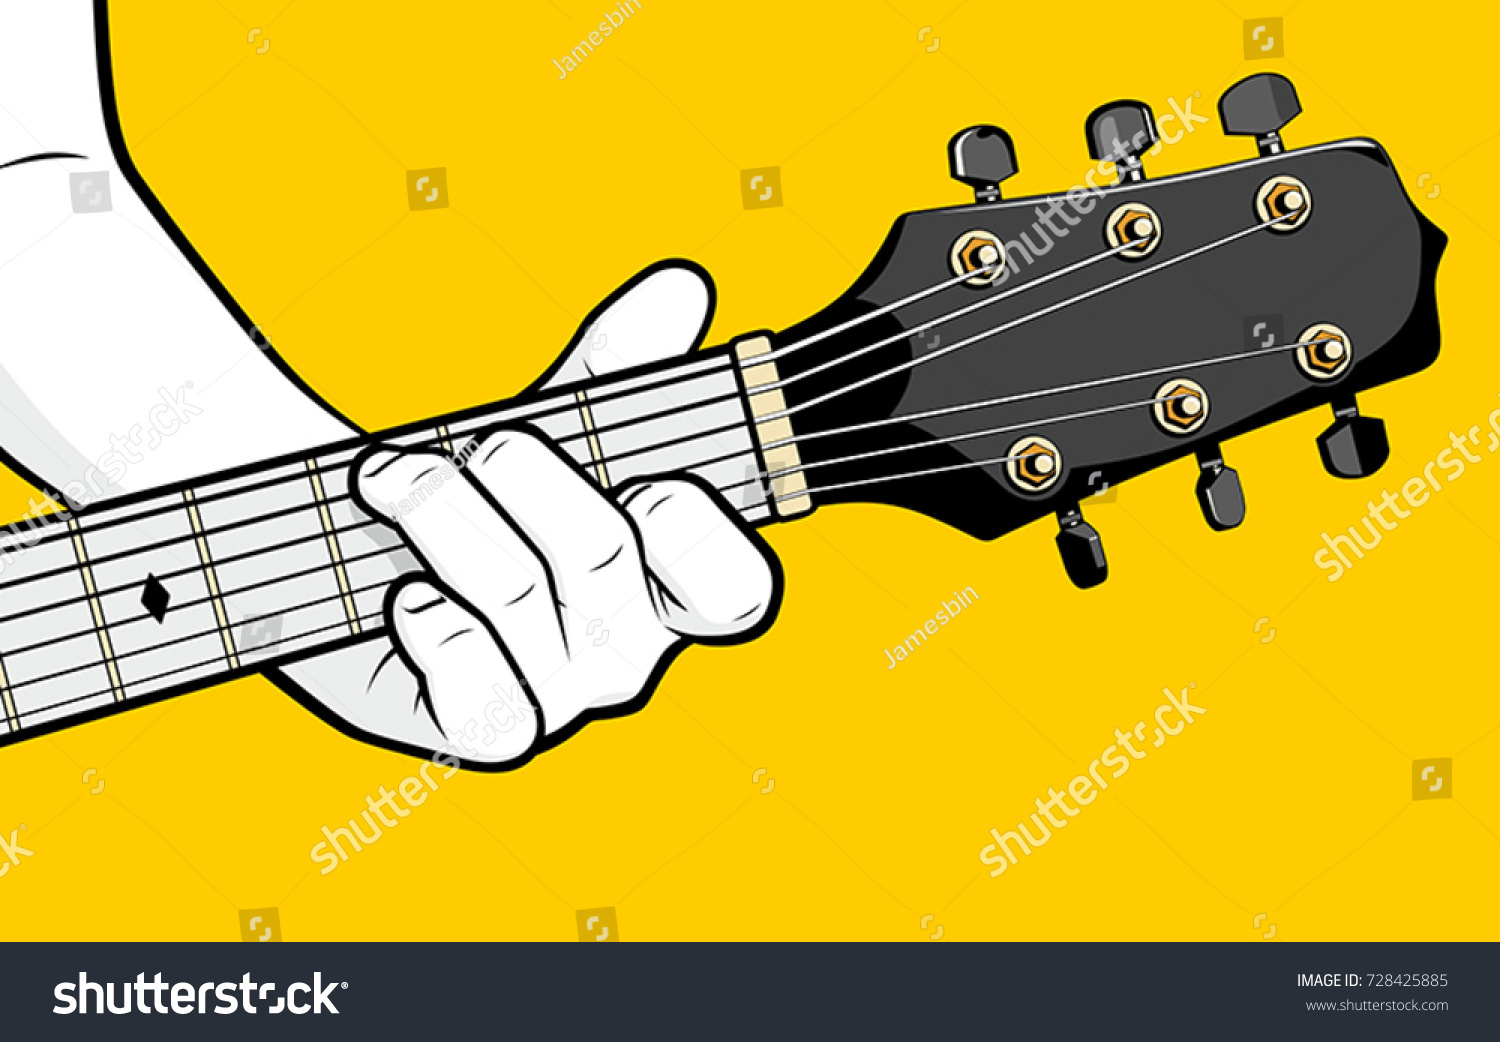 Guitar Player Hand Playing C Chord Stock Vector Royalty Free